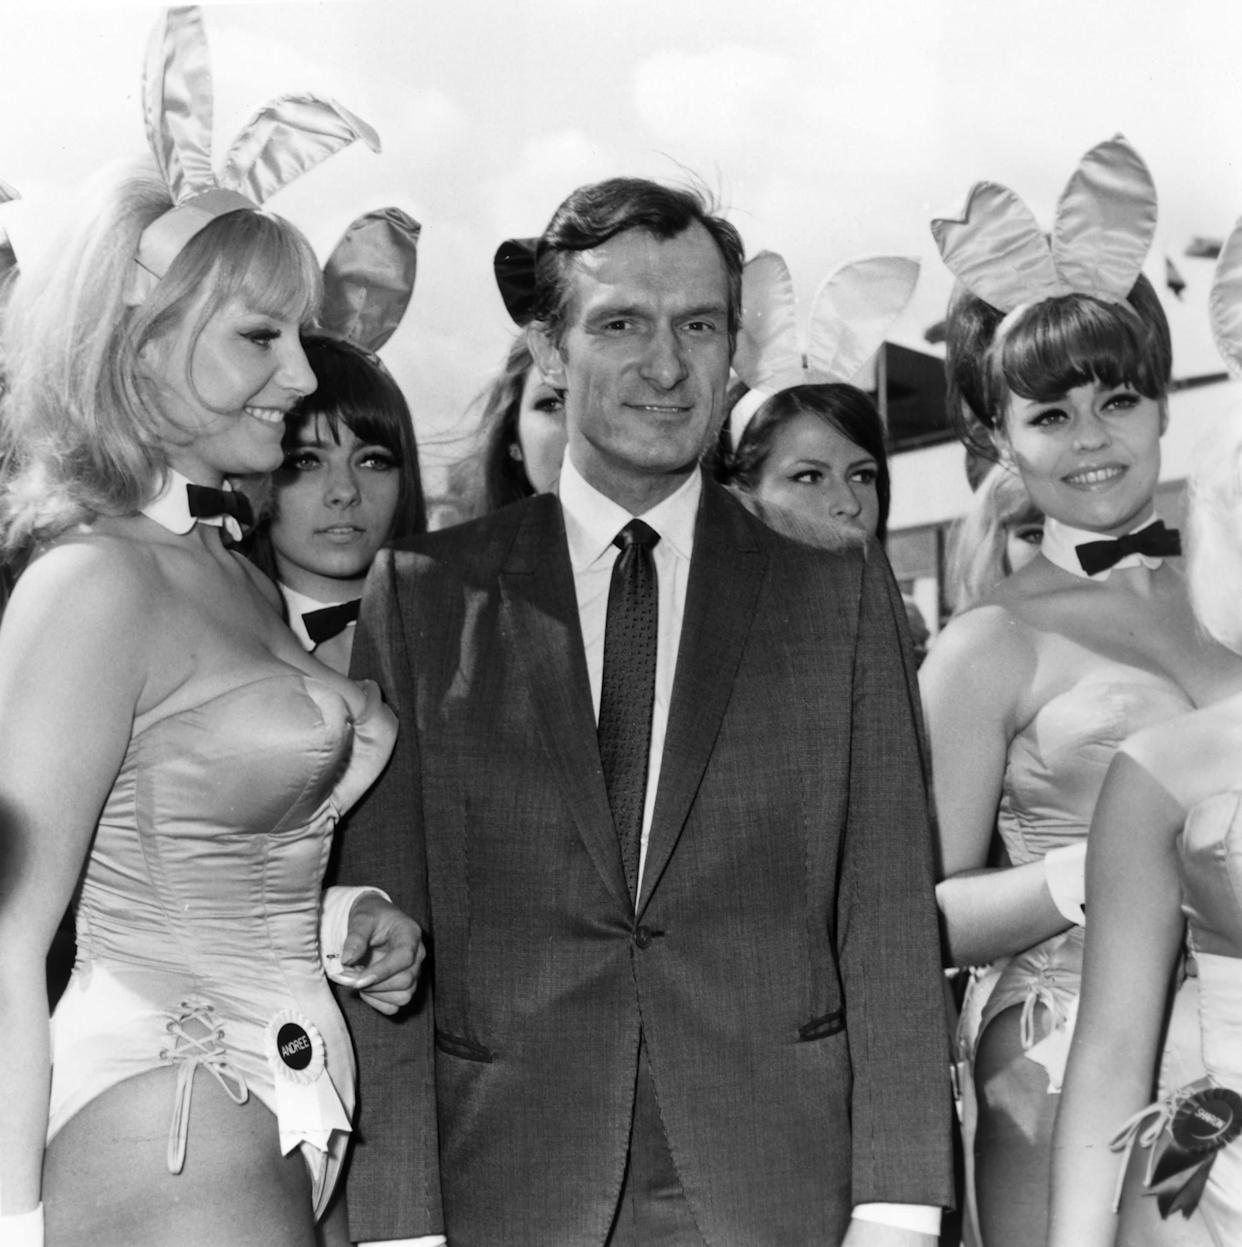 Playboy editor and tycoon Hugh Hefner is greeted by a group of Bunnies from his Playboy Clubsas he arrives in London in 1966. (Photo: Dove via Getty Images)